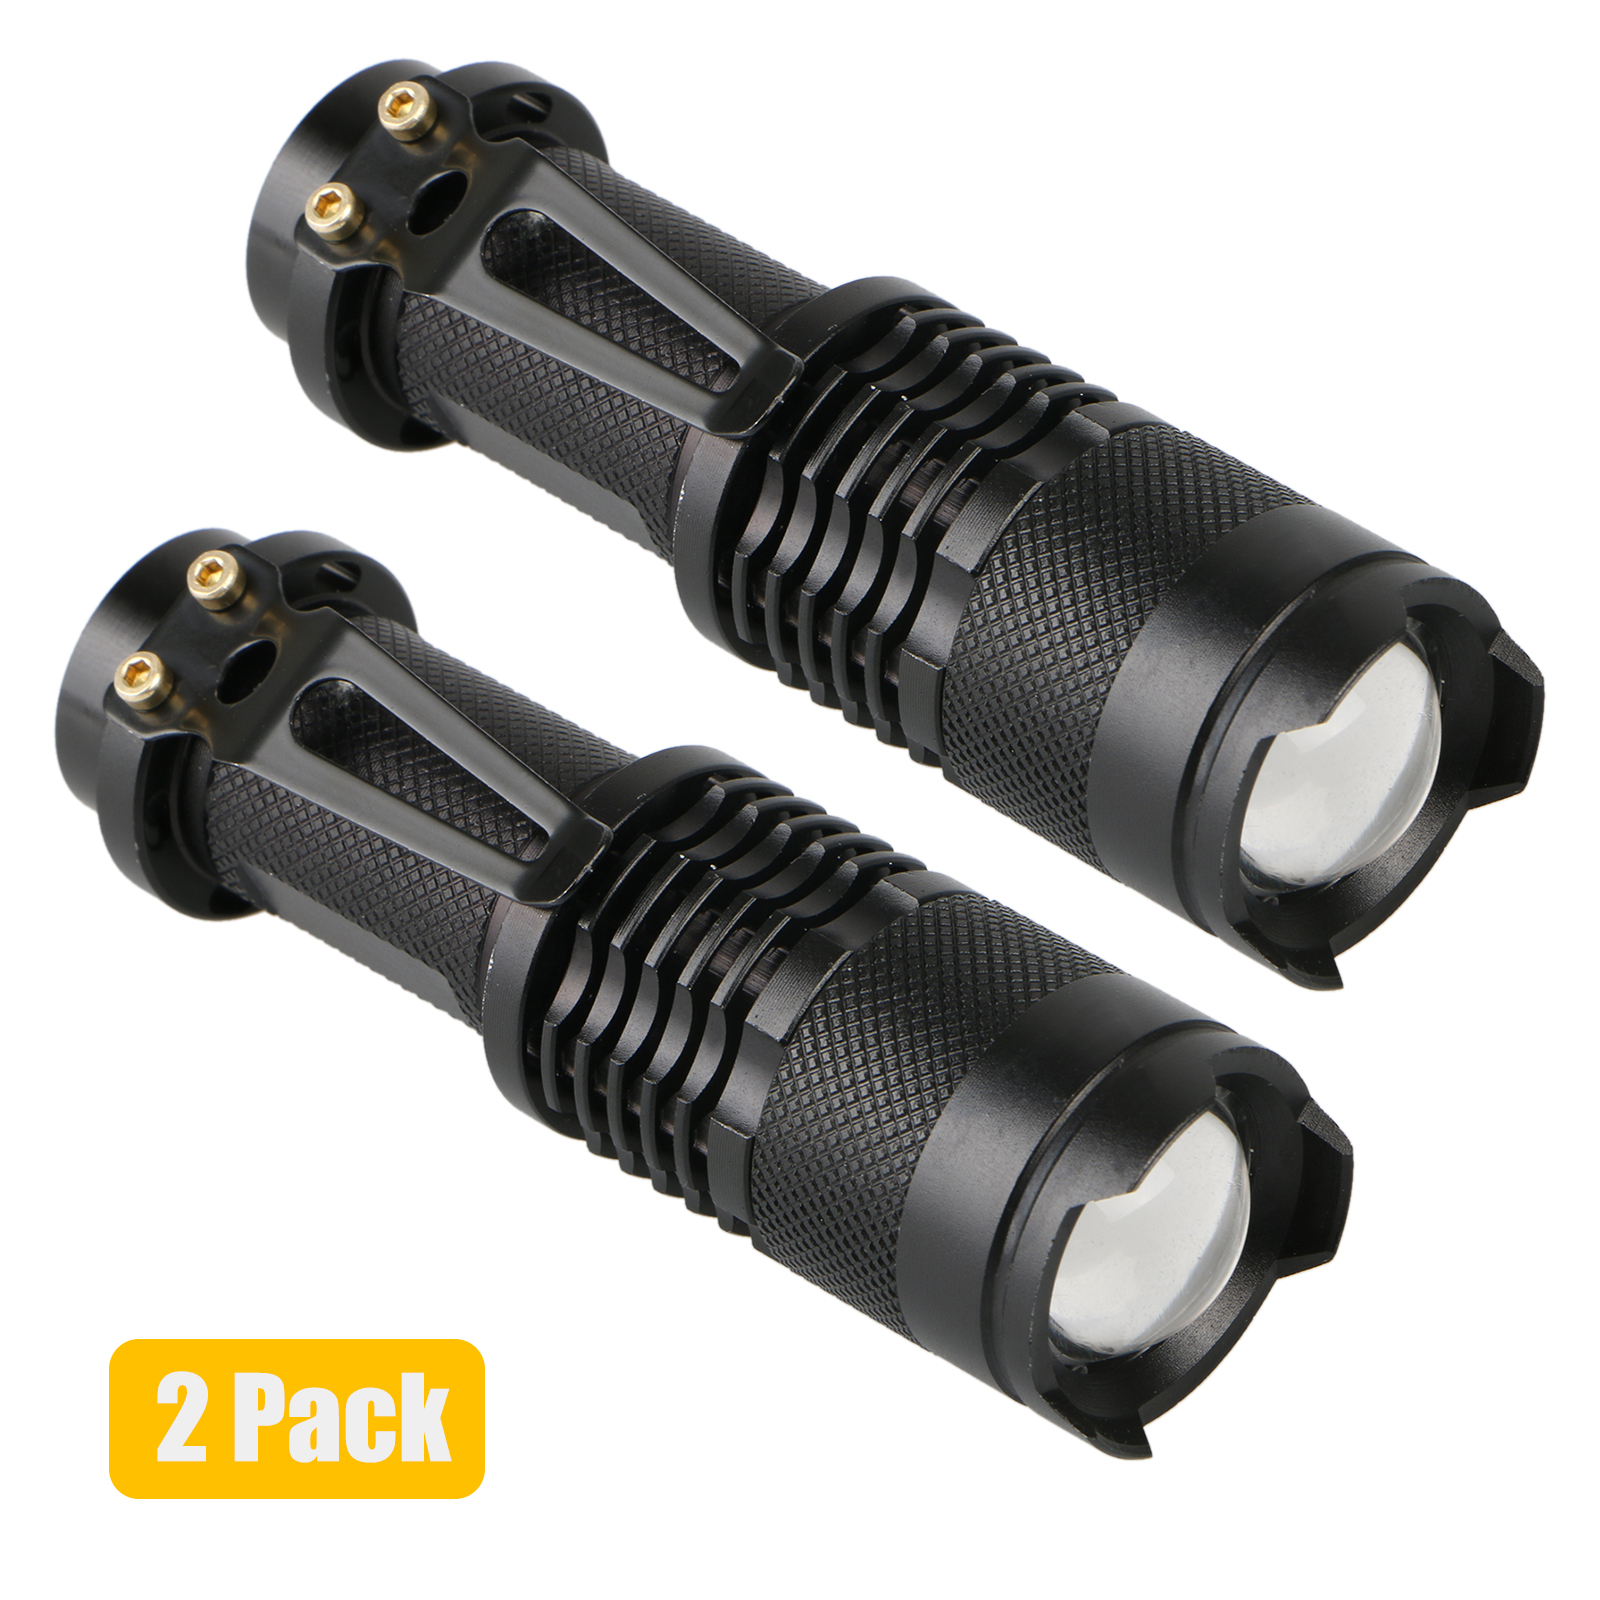 2-pack Super Bright LED Tactical Flashlight Military Grade Zoomable Adjustable Focus Water Resistant Torch Light Lamp